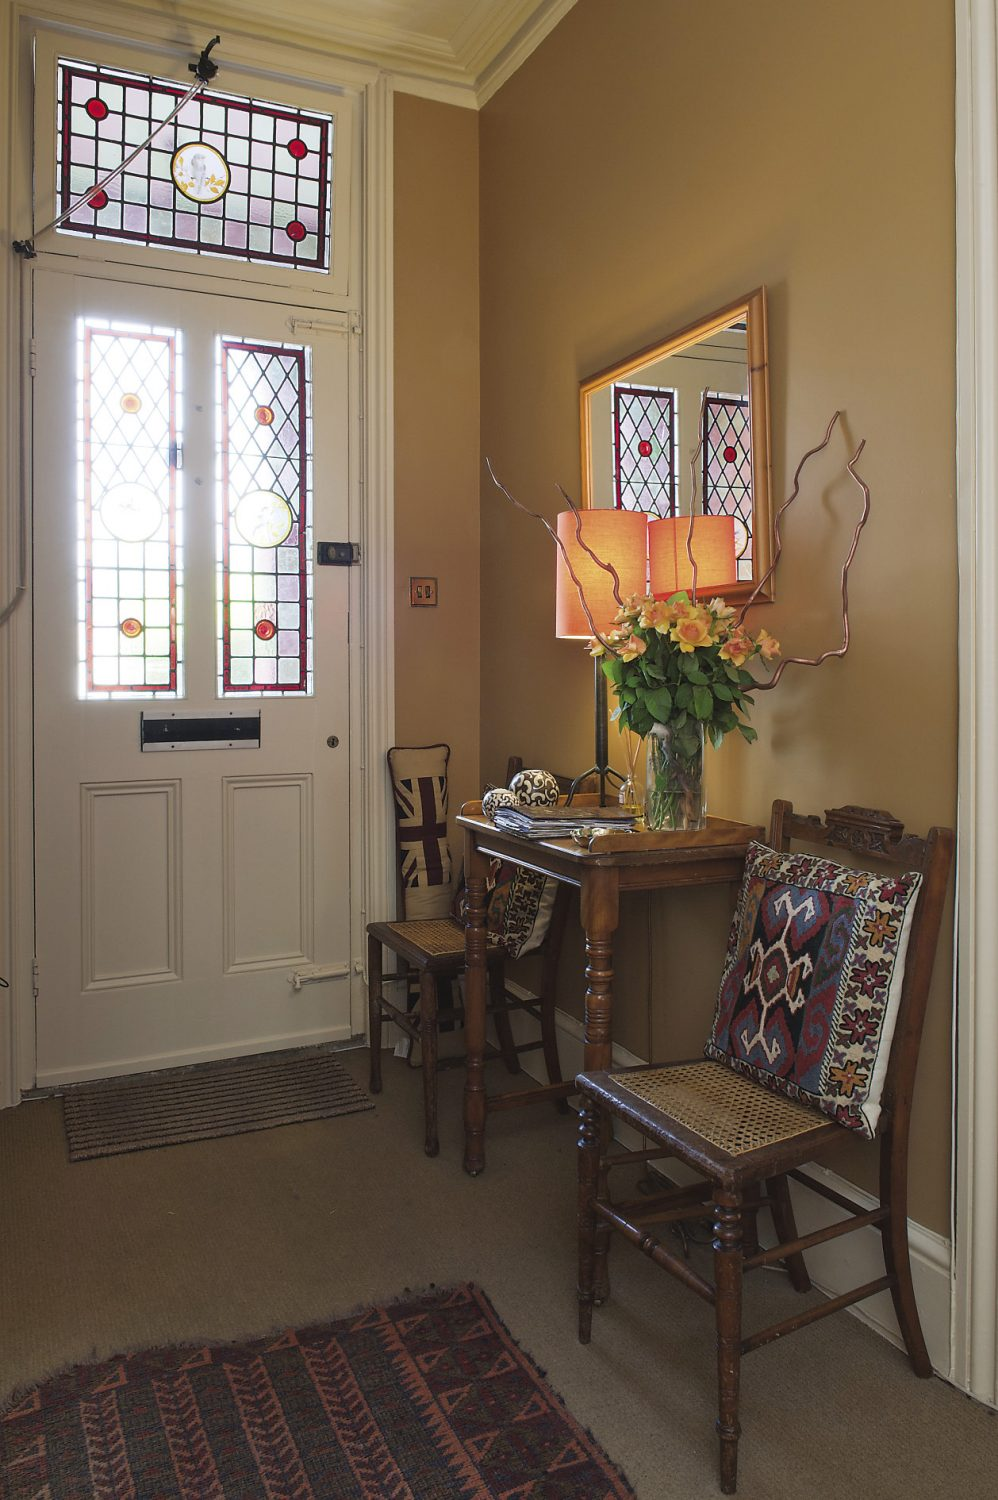 The inviting glow of the colours used in the hallway combined with the stained glass panels, provides a warm welcome to Ann Edwards' Victorian villa